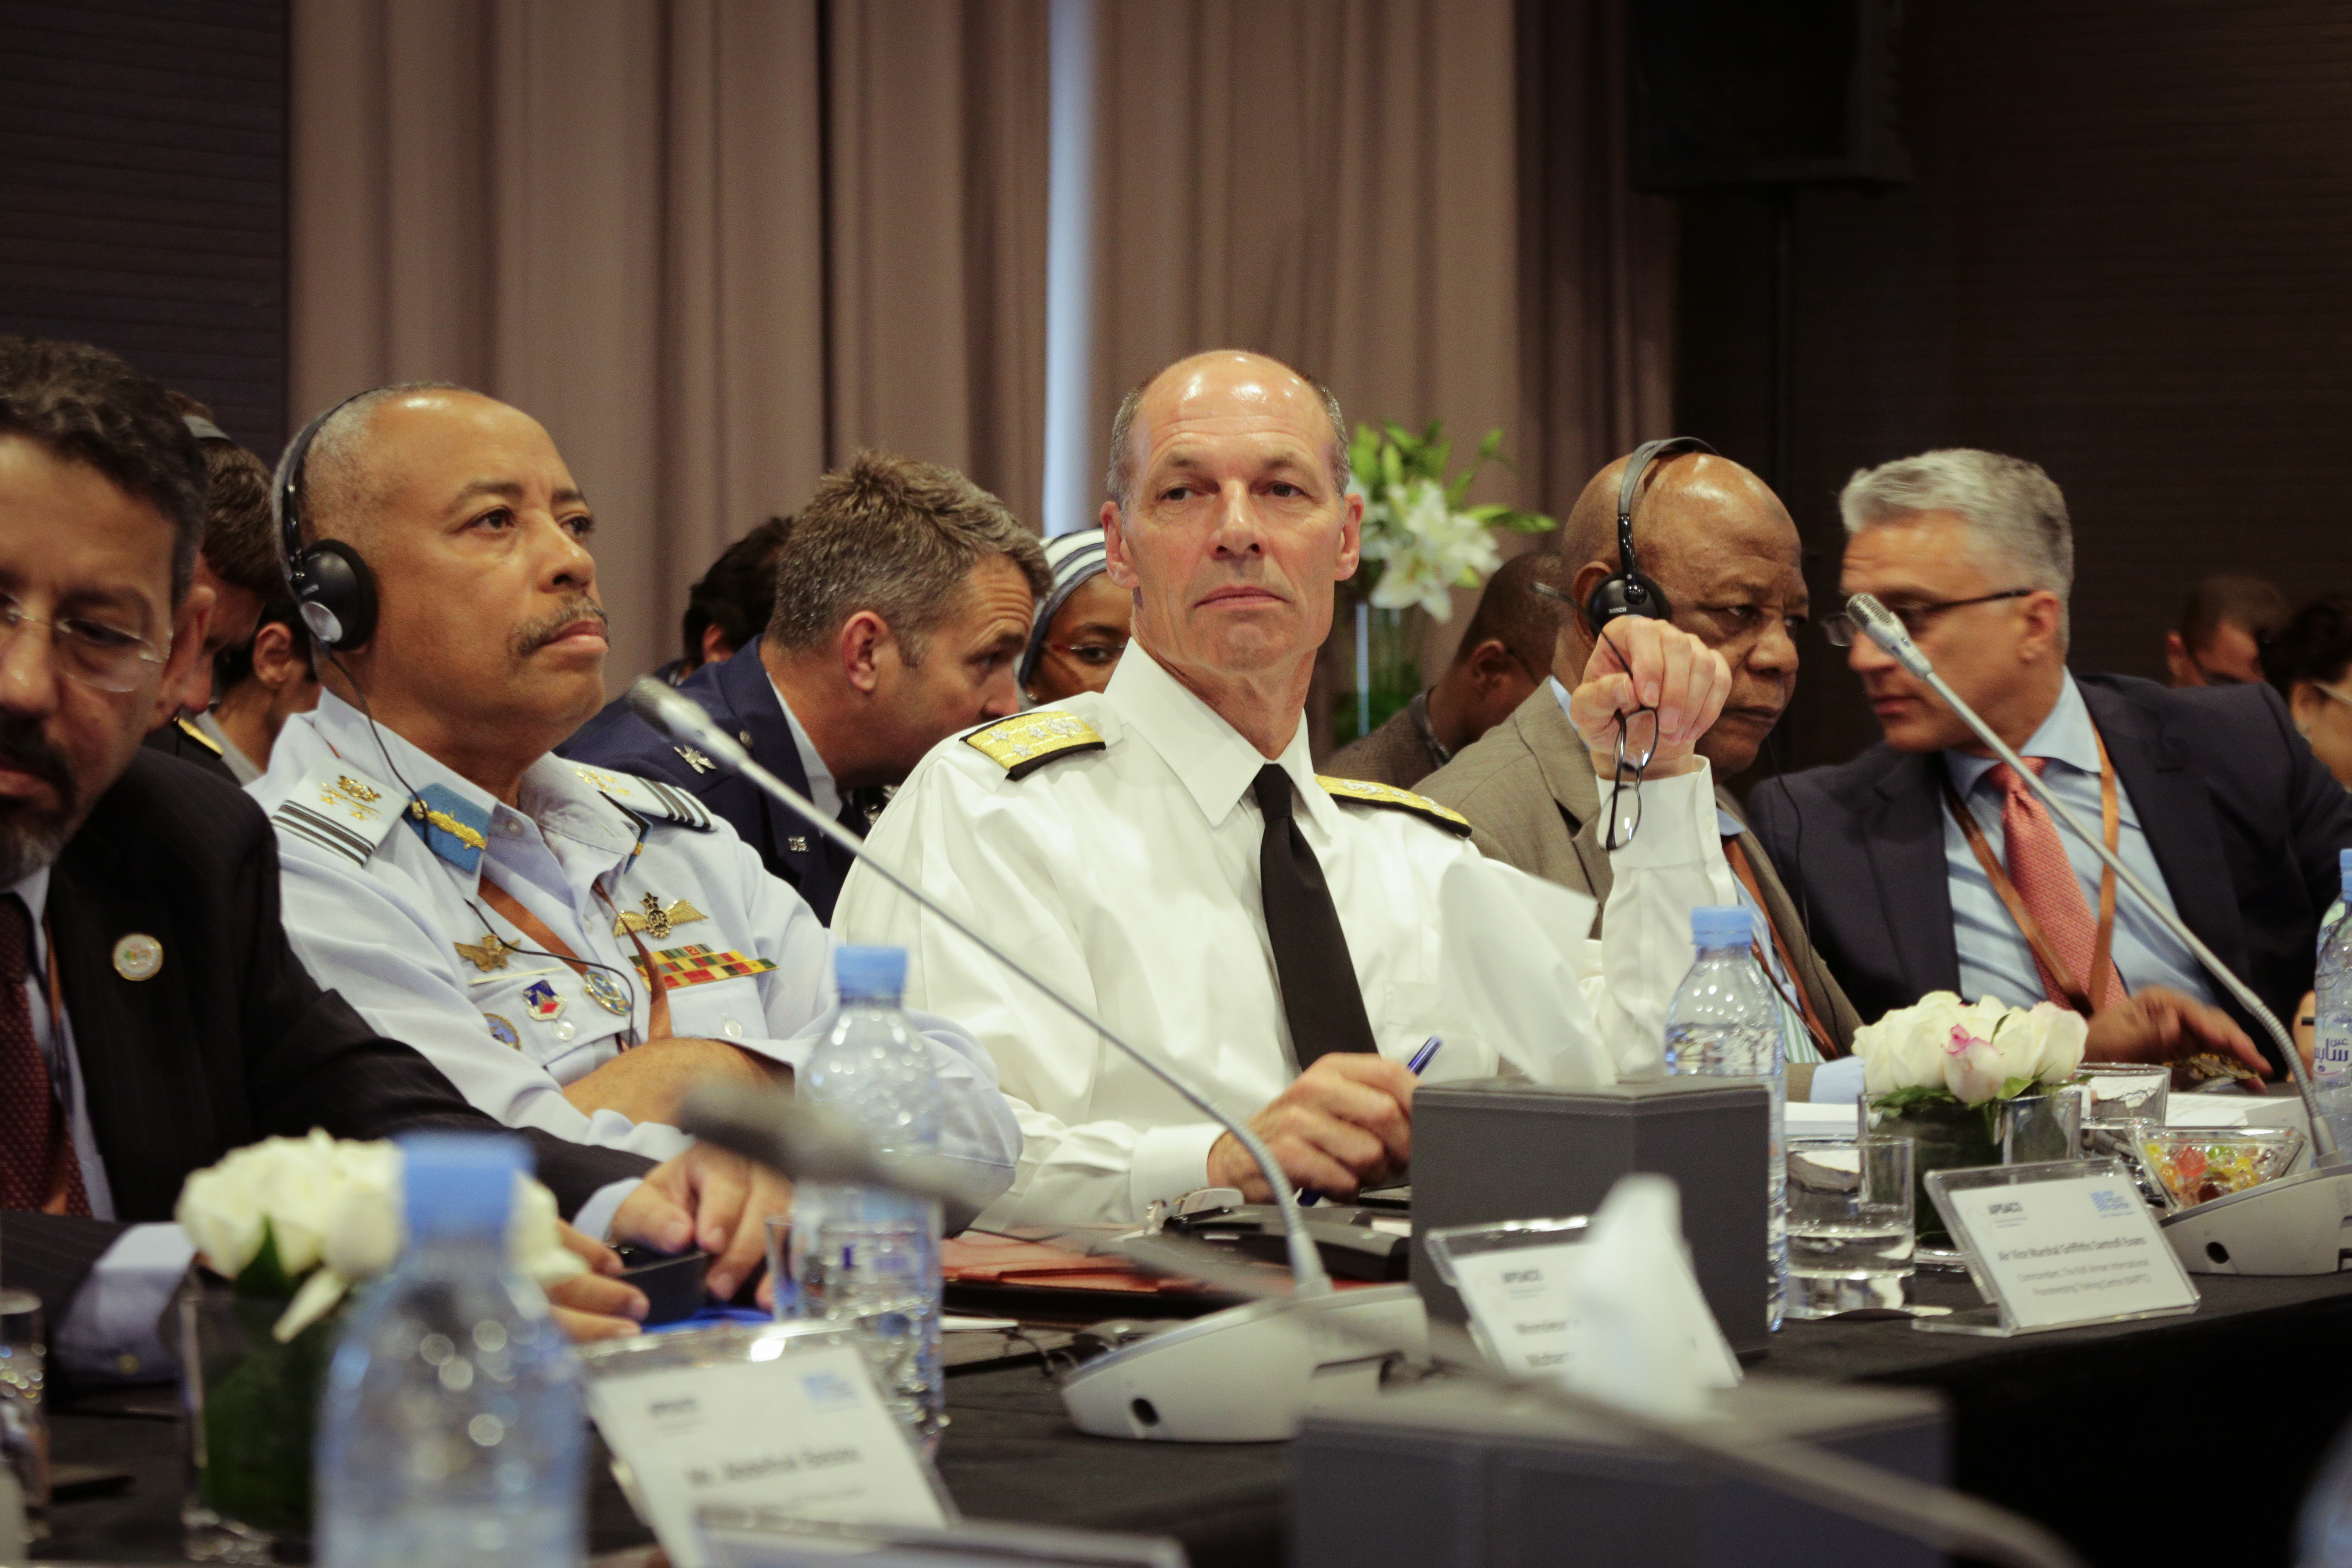 Vice Adm. Michael Franken, Deputy to the Commander for Military Operations, participates in a session during the OCP Policy Center's African Peace and Security Annual Conference in Rabat, Morocco July 9-11, 2017.